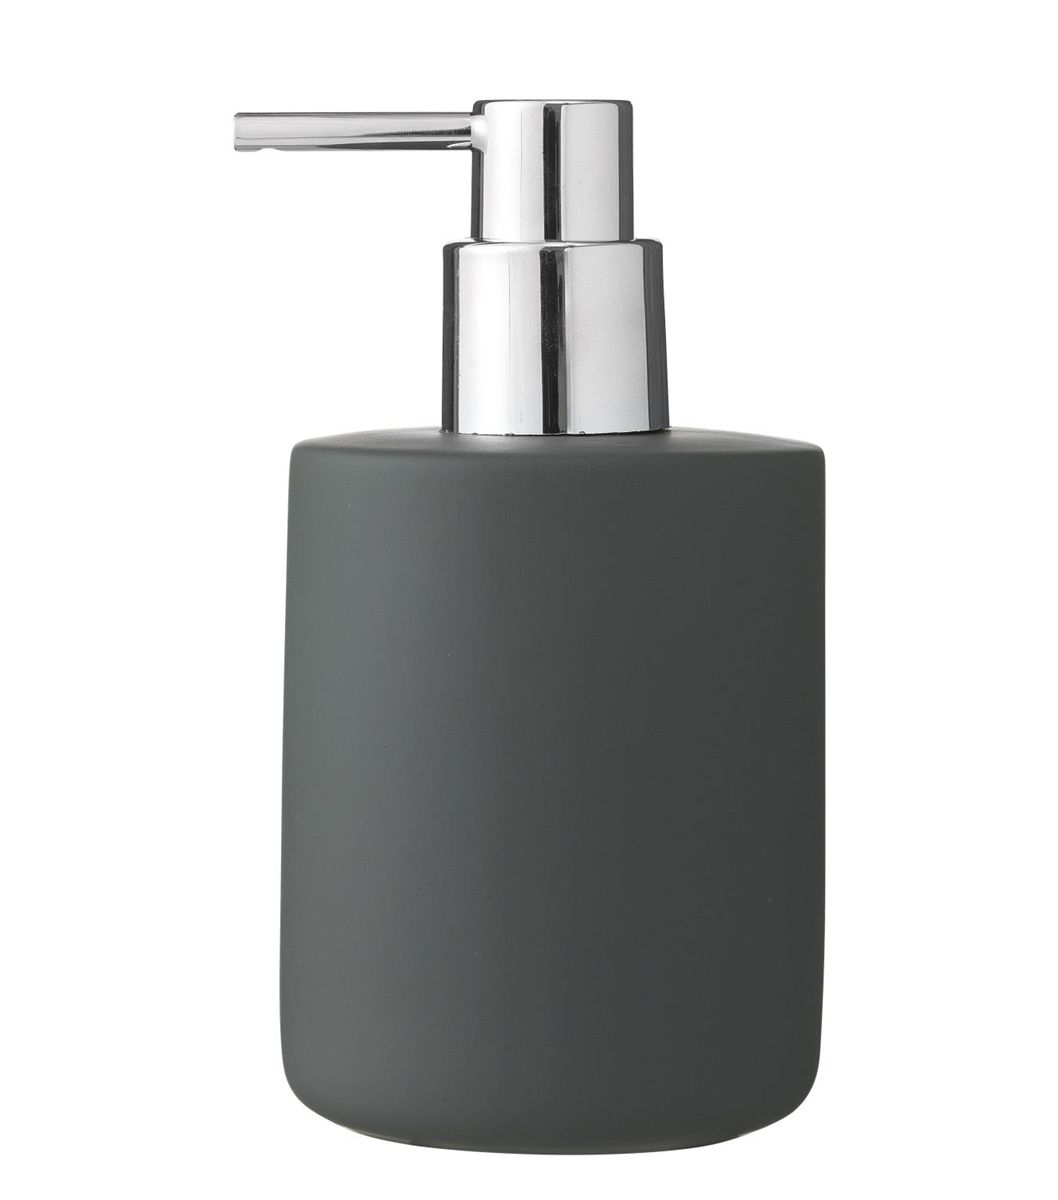 Zijden Kussensloop Hema Zeeppomp Hema Me Bathroom Soap Dispenser En Design